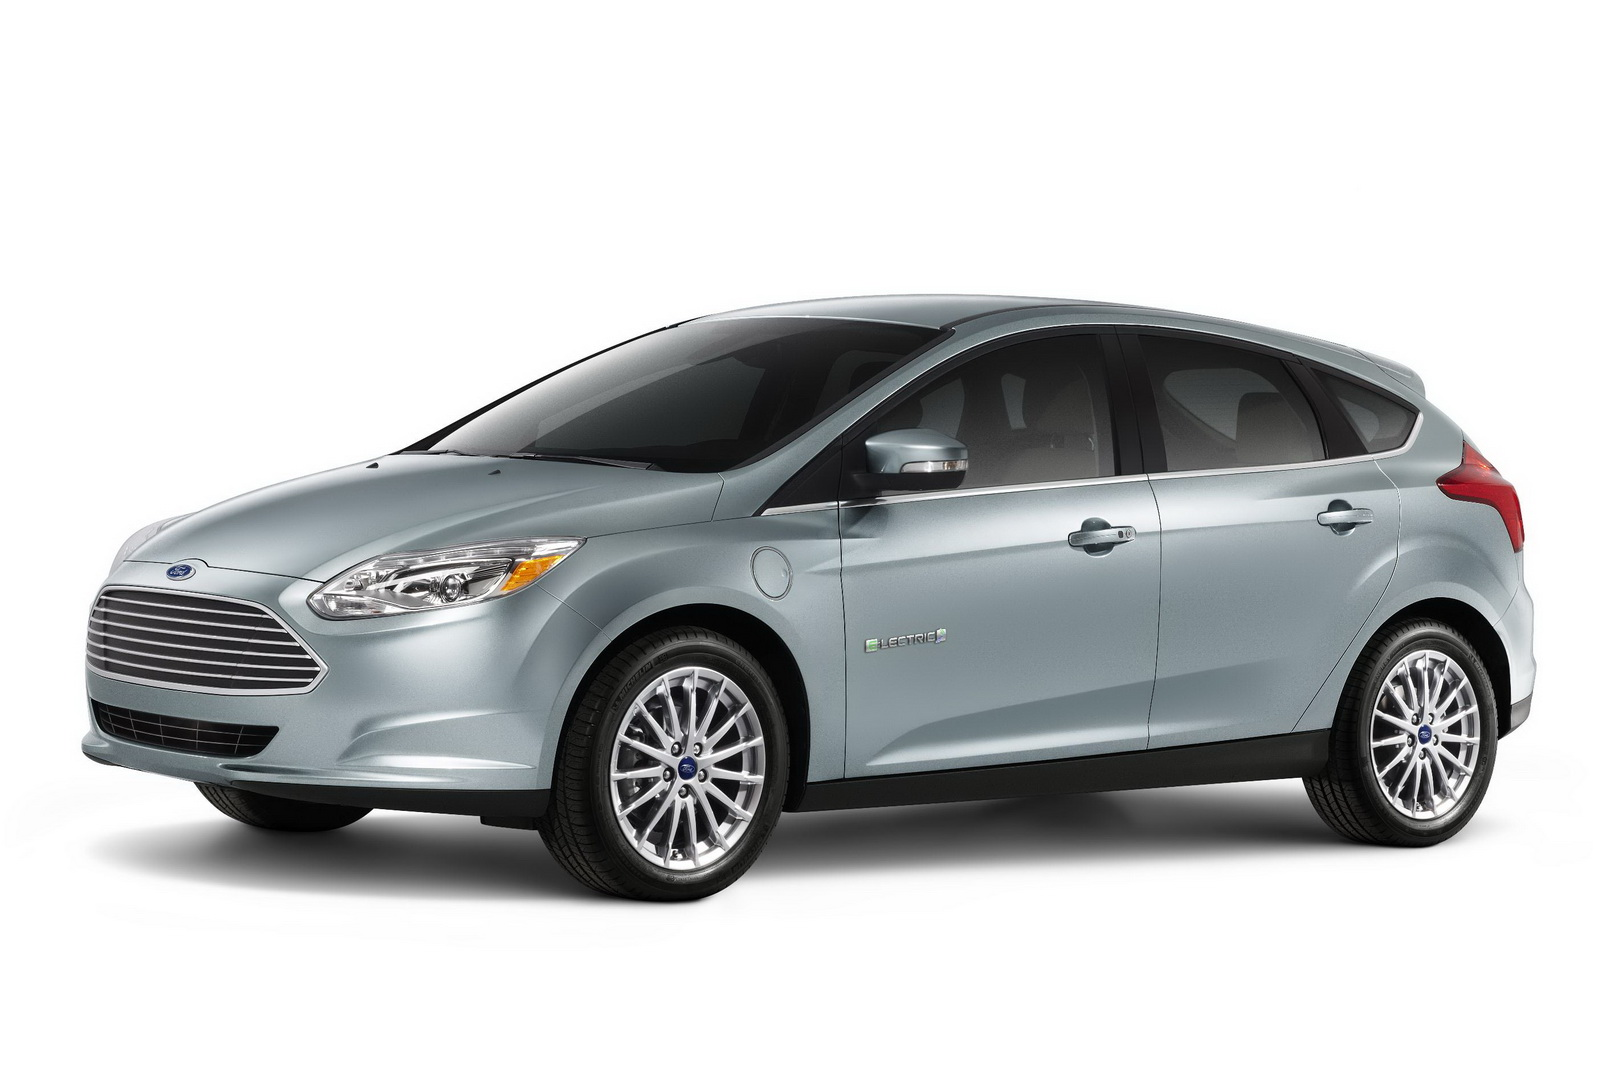 Denver Ford Dealers >> Ford to Launch Pure-Electric Focus in New York and California by the end of the Year | Carscoops